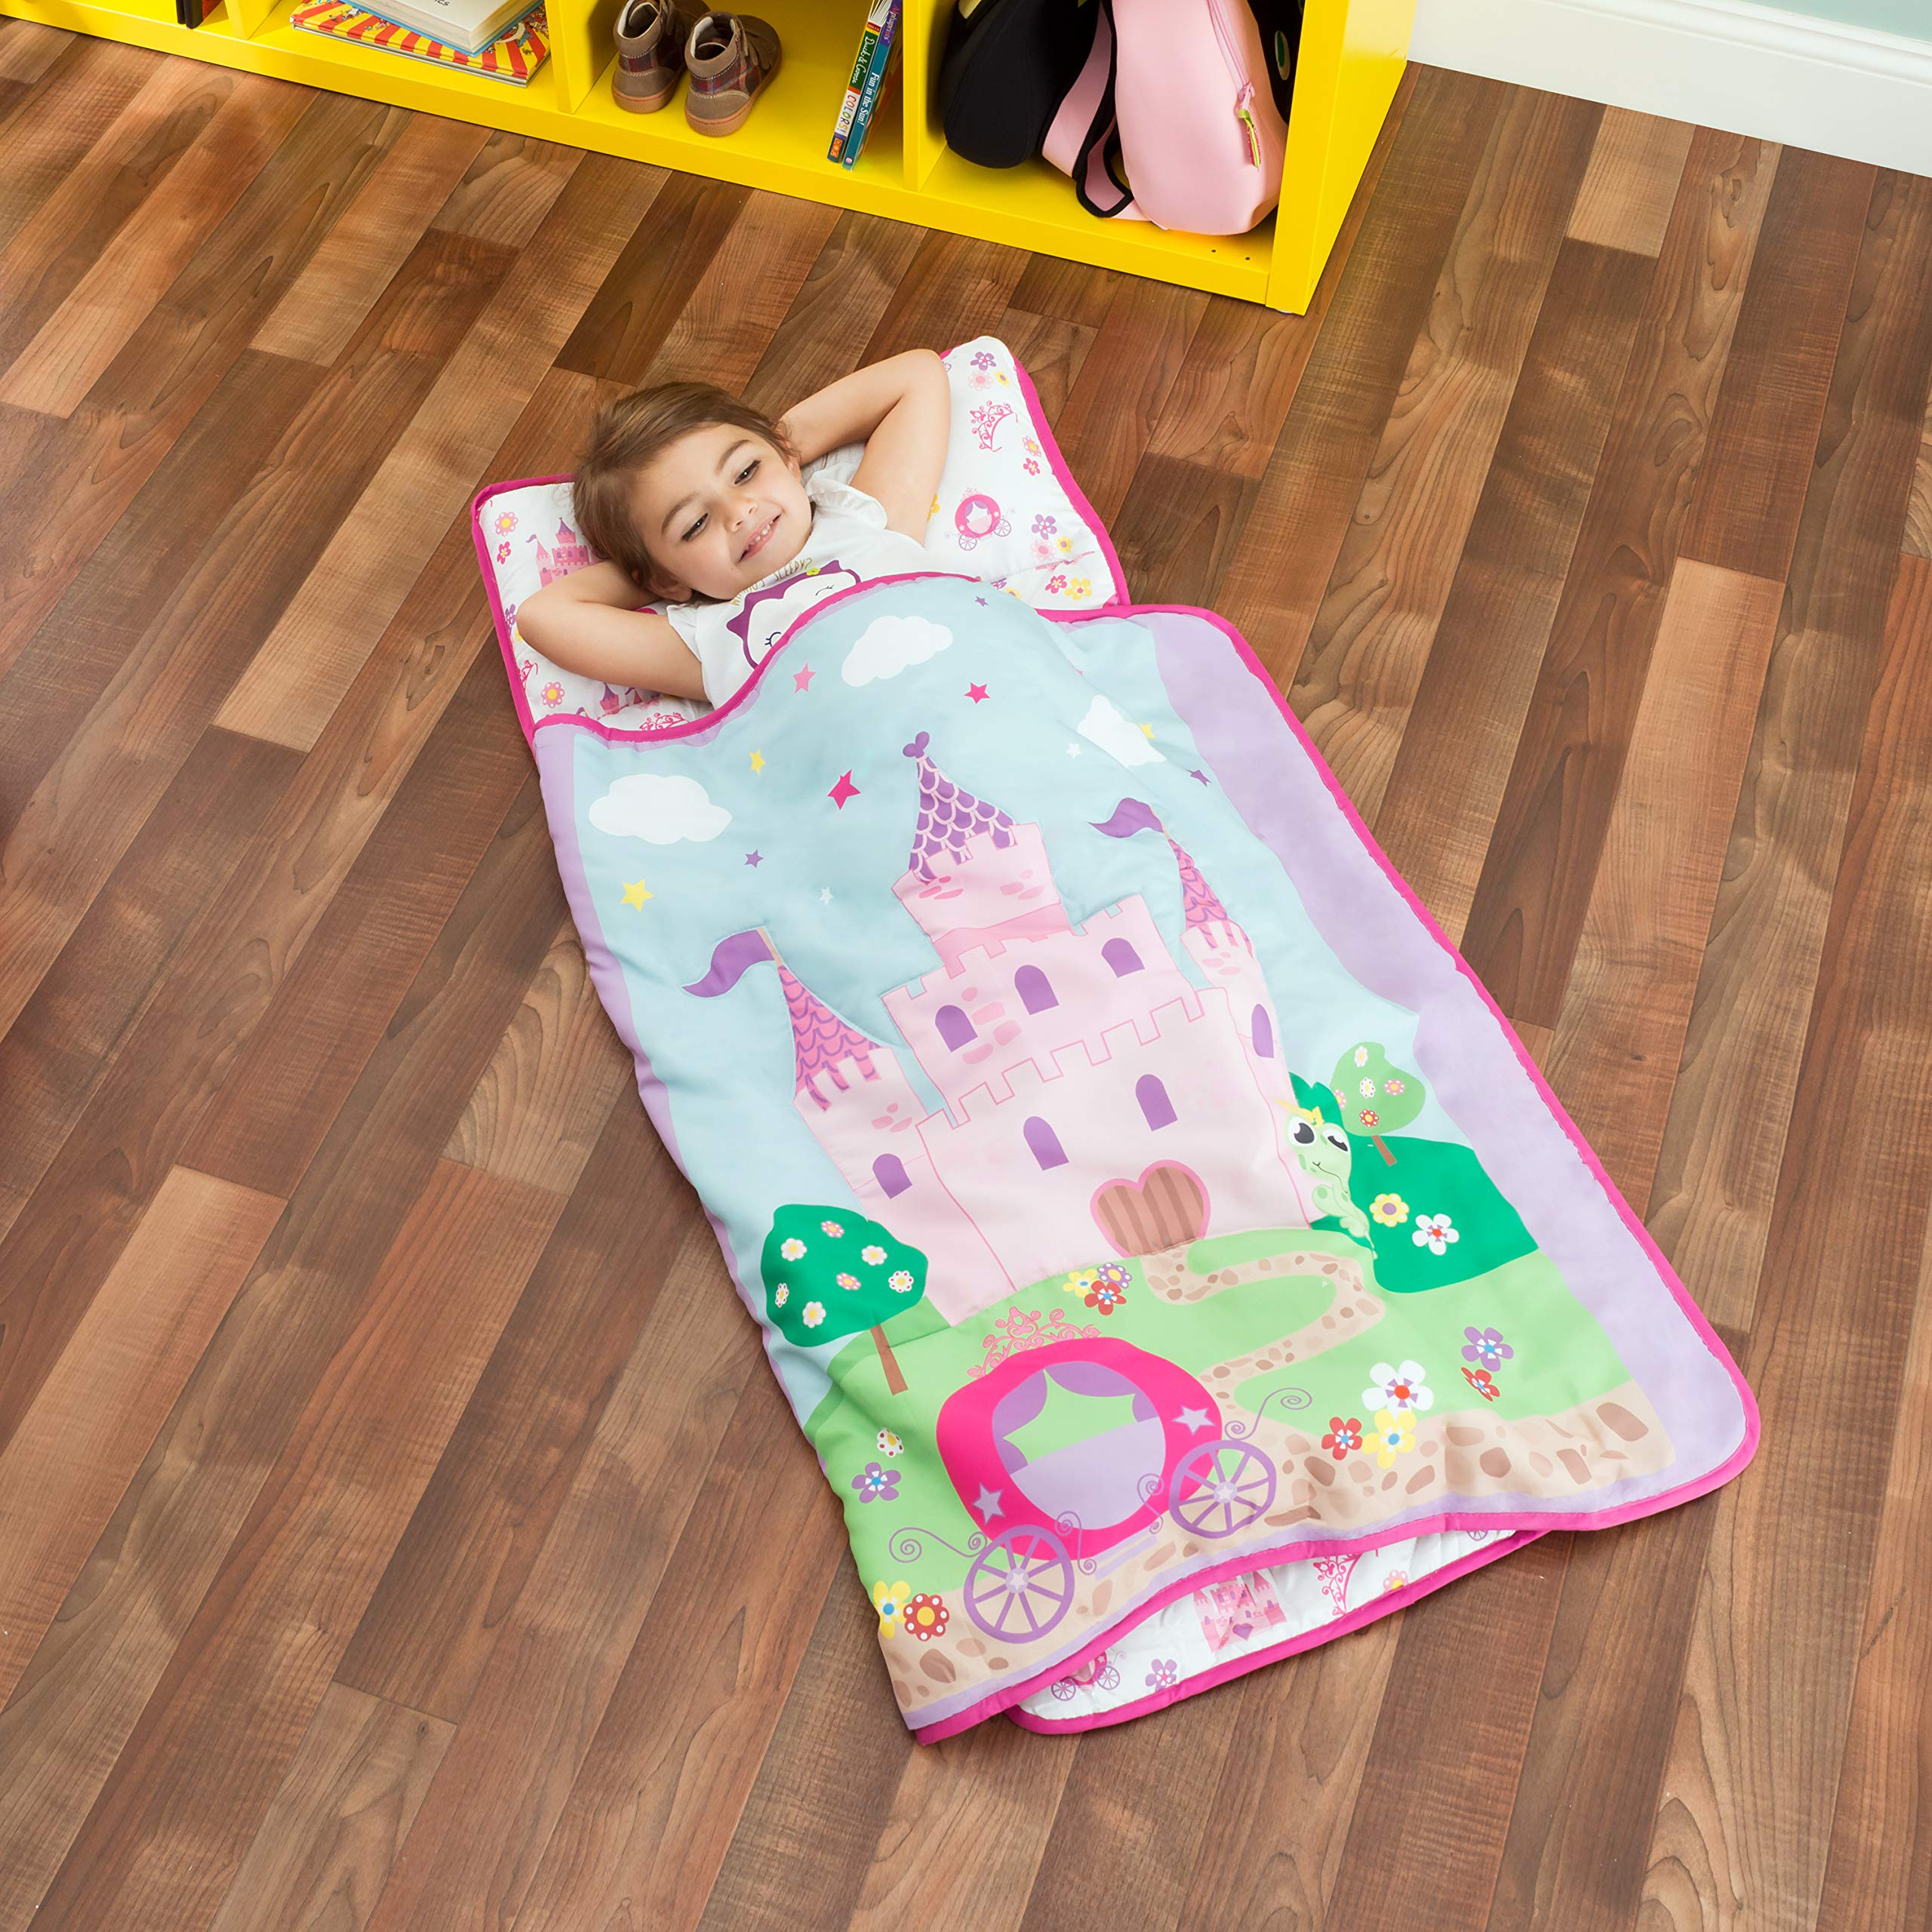 Everyday Kids Toddler Nap Mat with Removable Pillow -Princess Storyland- Carry Handle with Fastening Straps Closure, Rollup Design, Soft Microfiber for Preschool, Daycare, Sleeping Bag -Ages 2-4 years by EVERYDAY KIDS (Image #1)